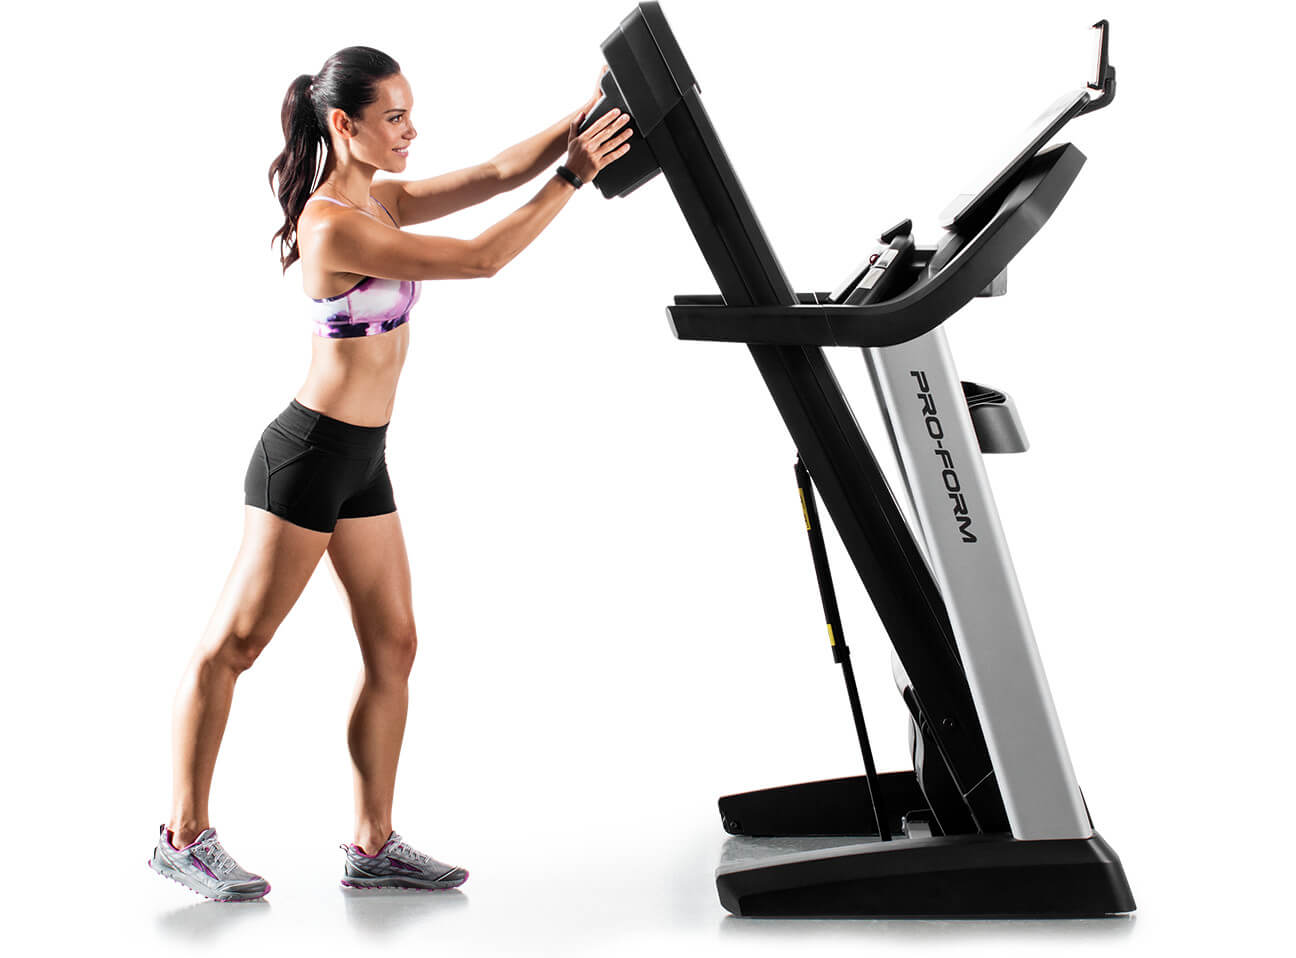 Treadmill in space-saving position with superimposed image of the various stages of the space-saving process